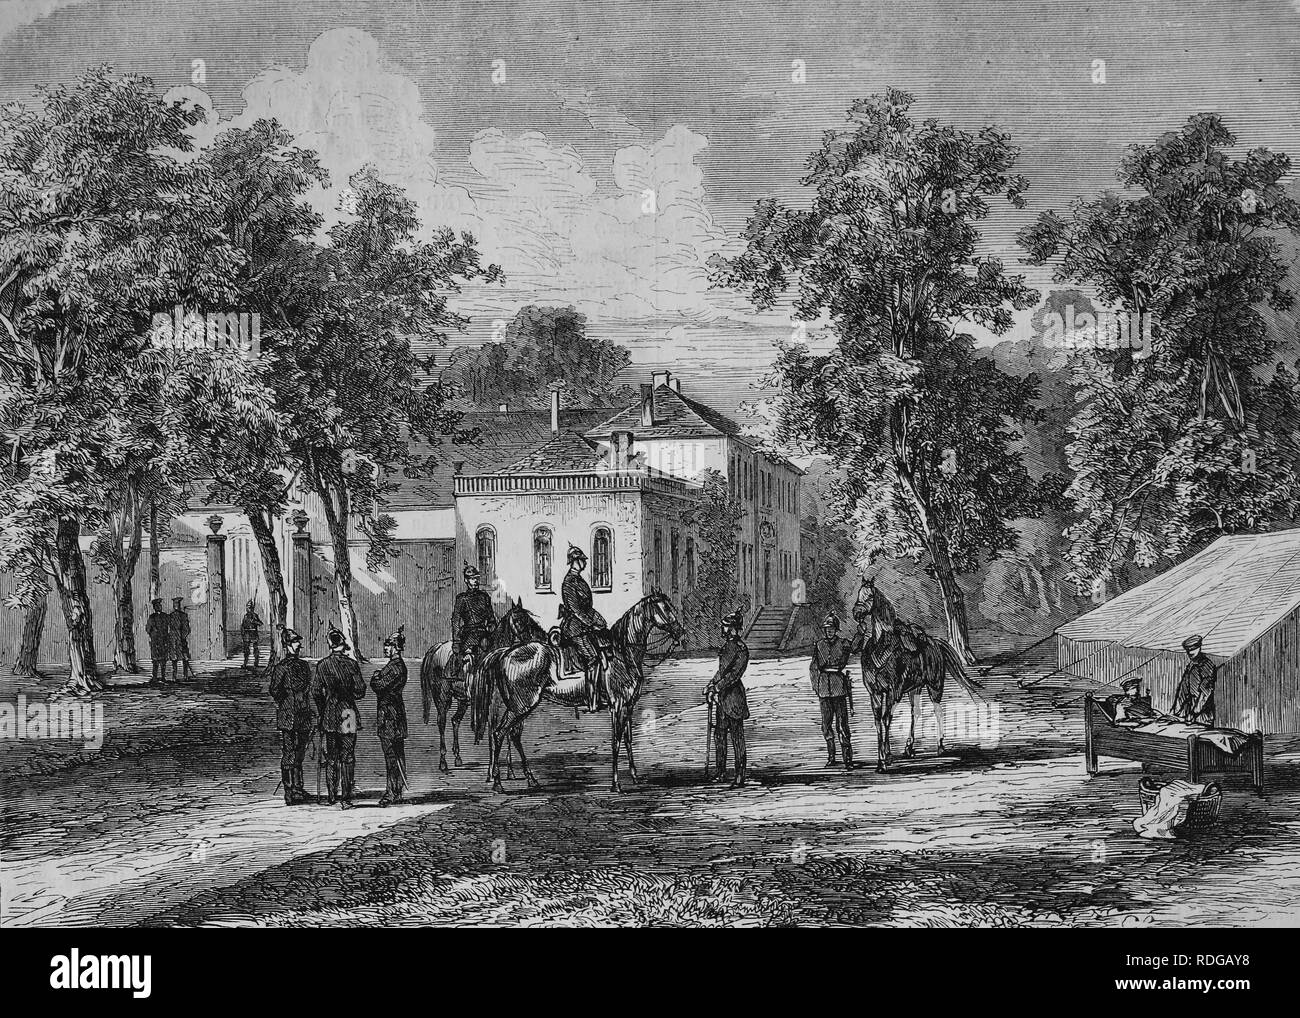 Headquarters of Prince Friedrich Carl zu Corny, near Metz, historic illustration, illustrated war chronicle 1870 to 1871, German campaign against Fran - Stock Image